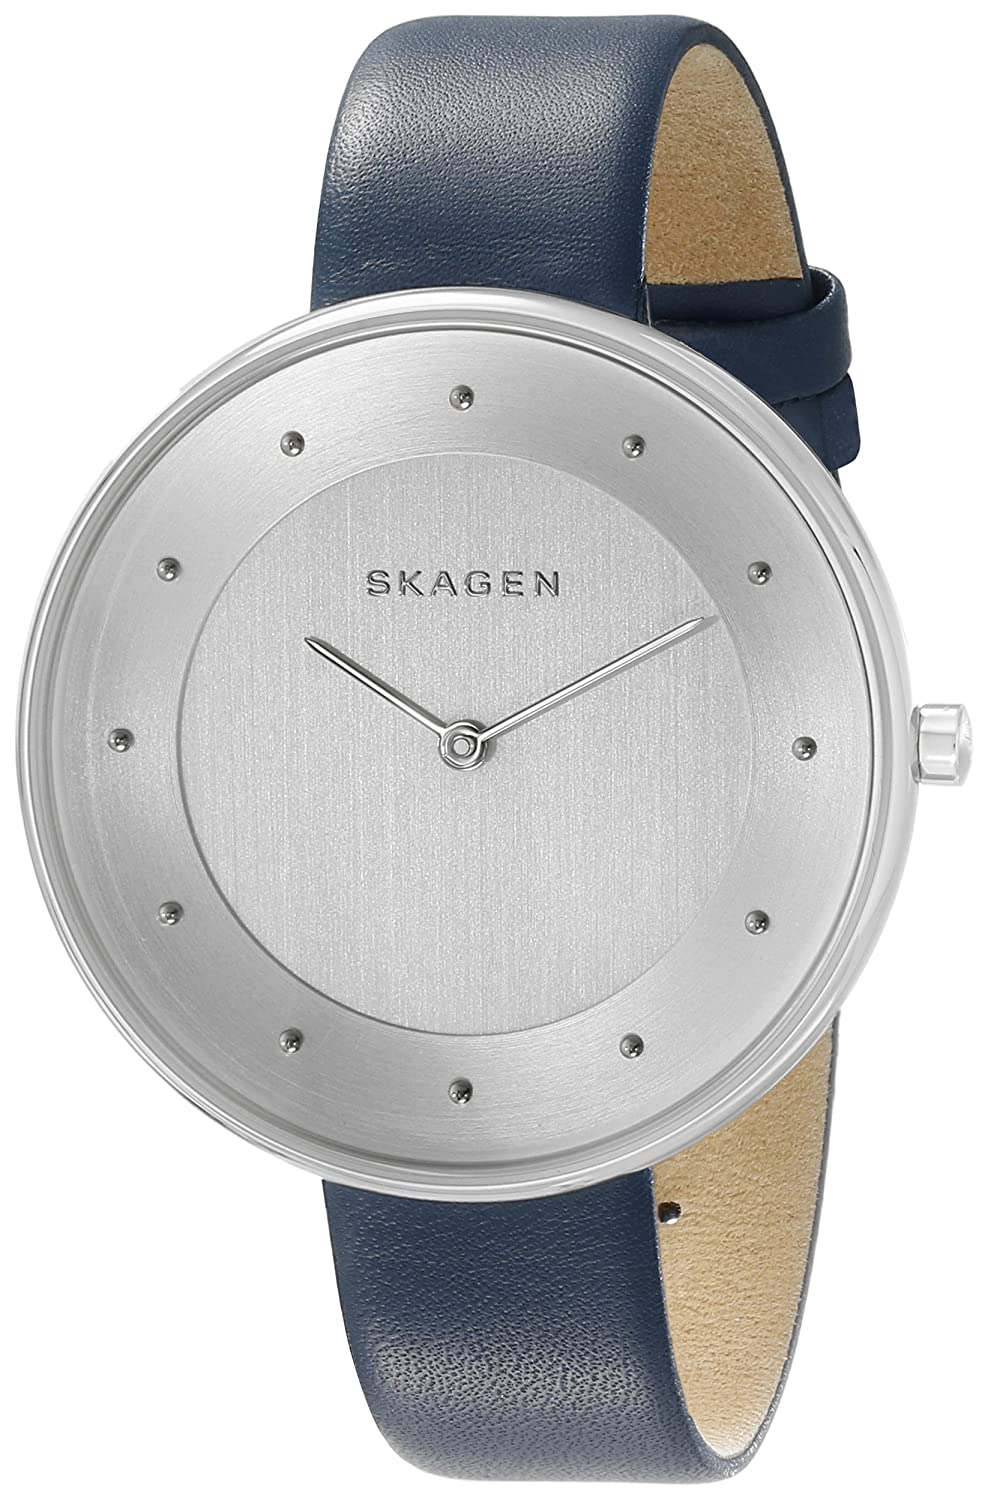 Skagen Women s SKW2315 Gitte Stainless Steel Watch with Blue Leather Band